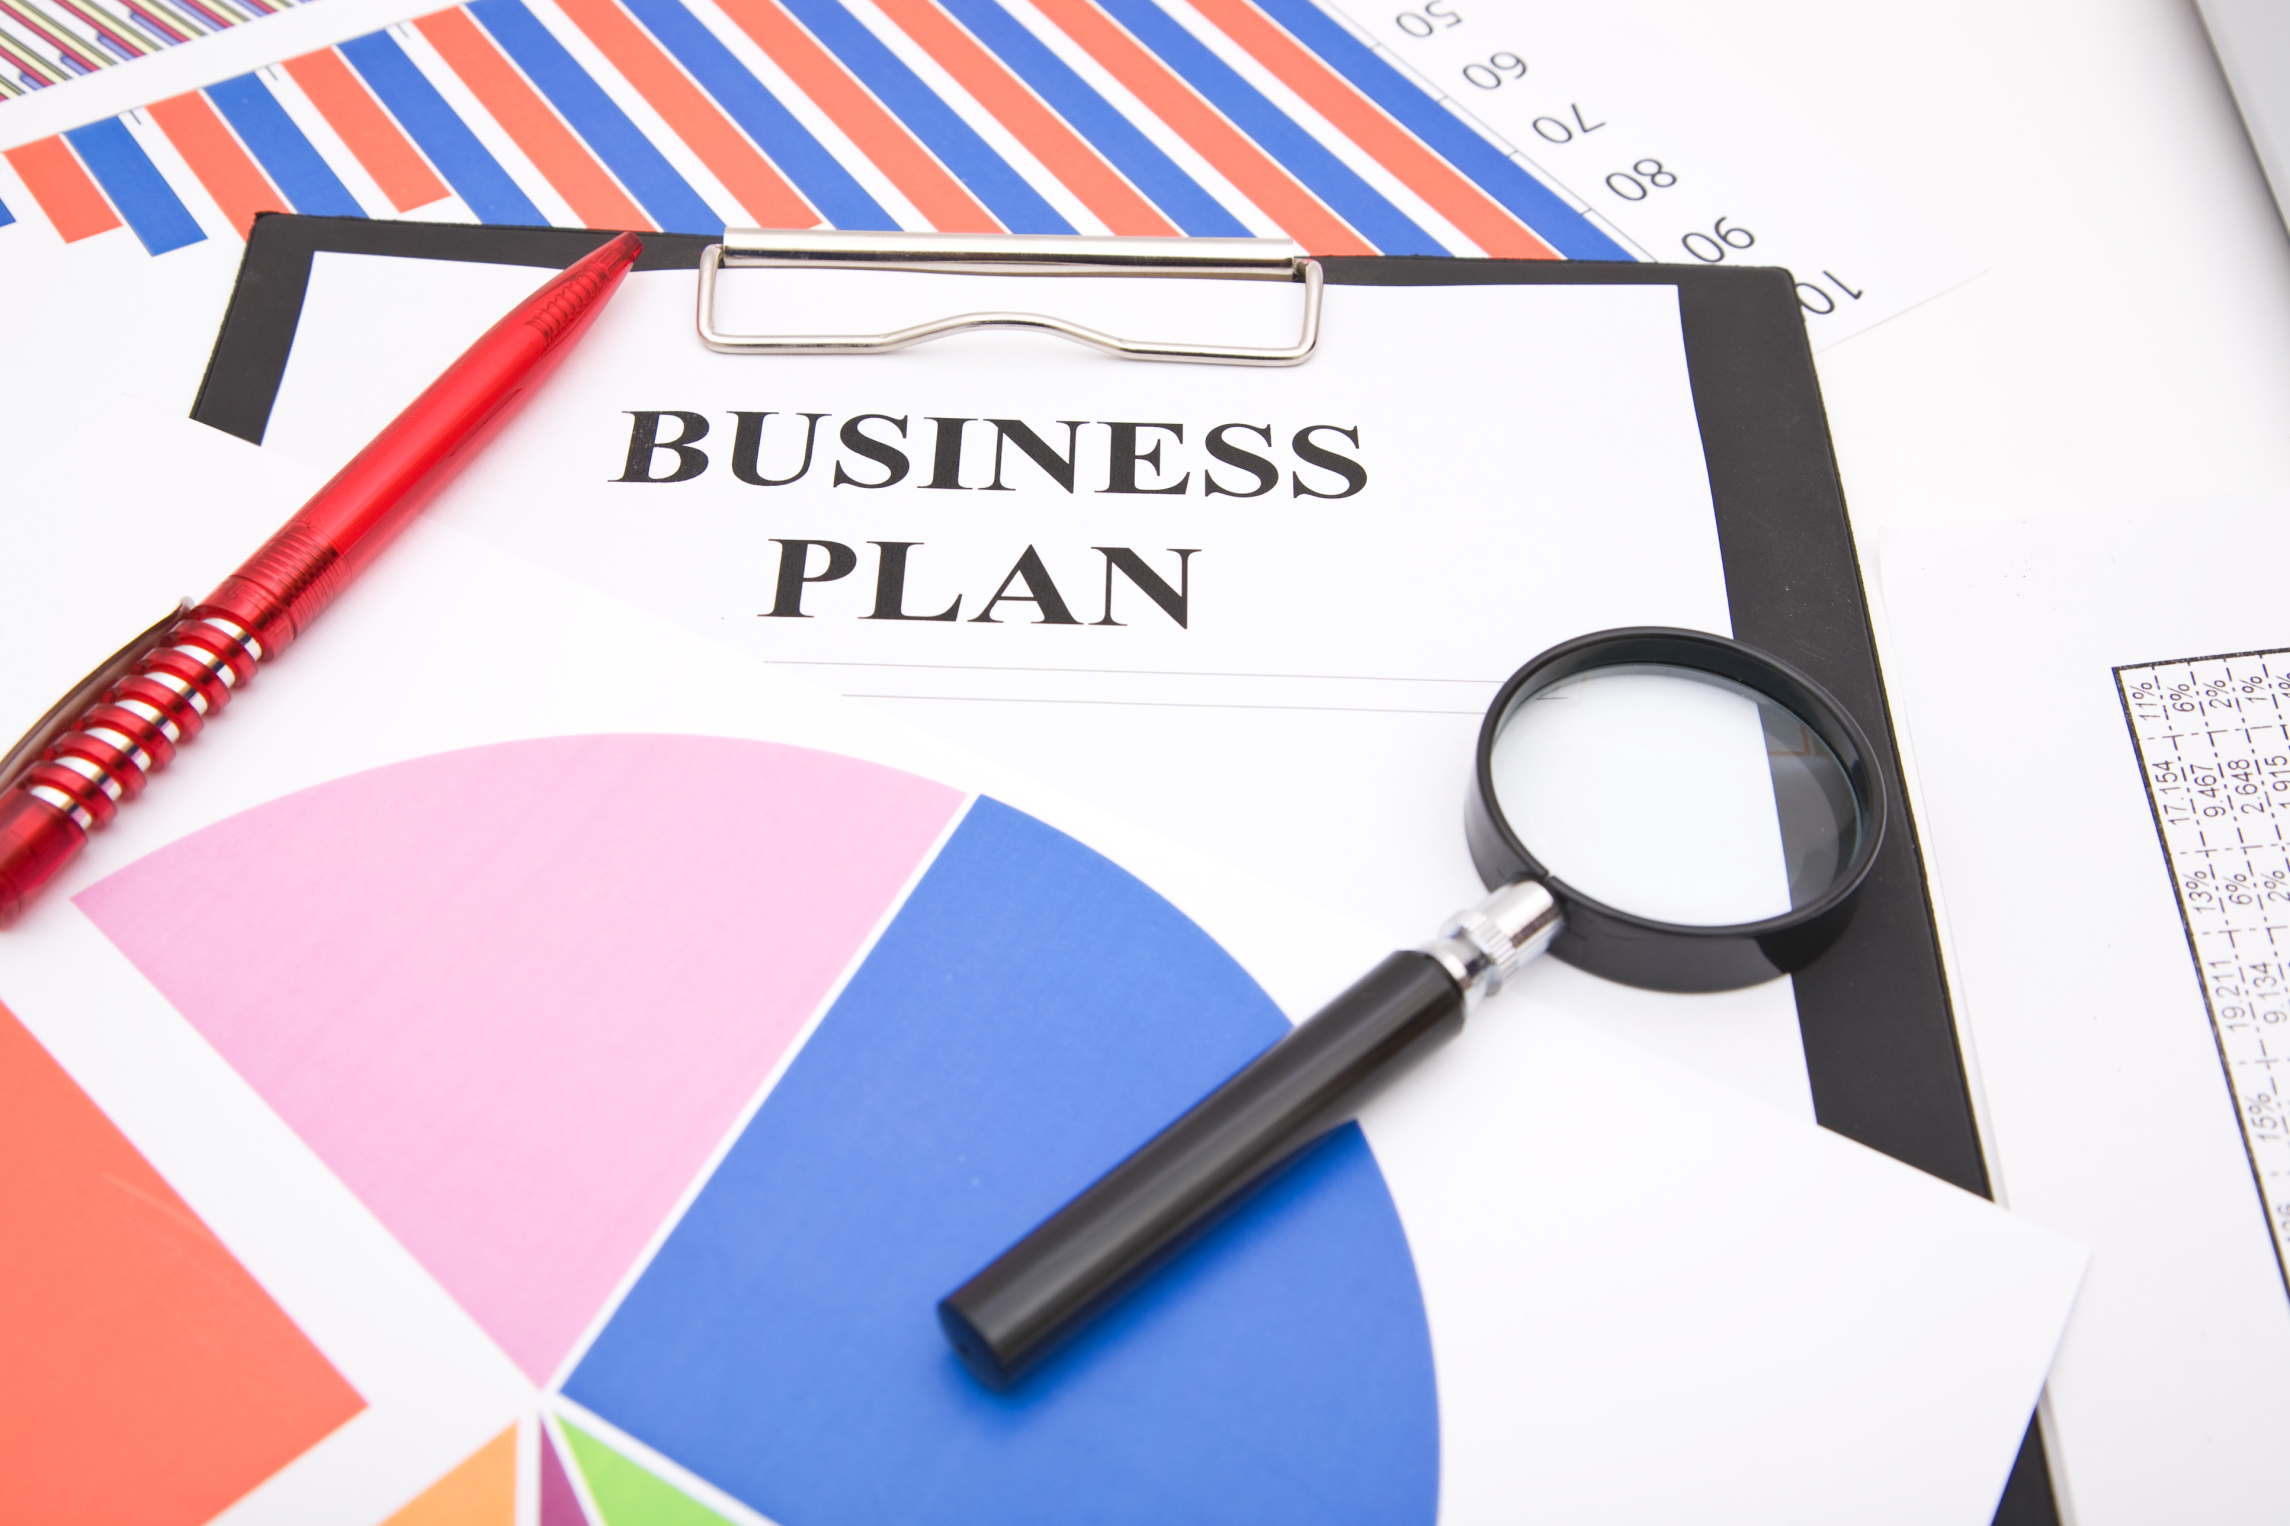 How to write an effective Business Plan